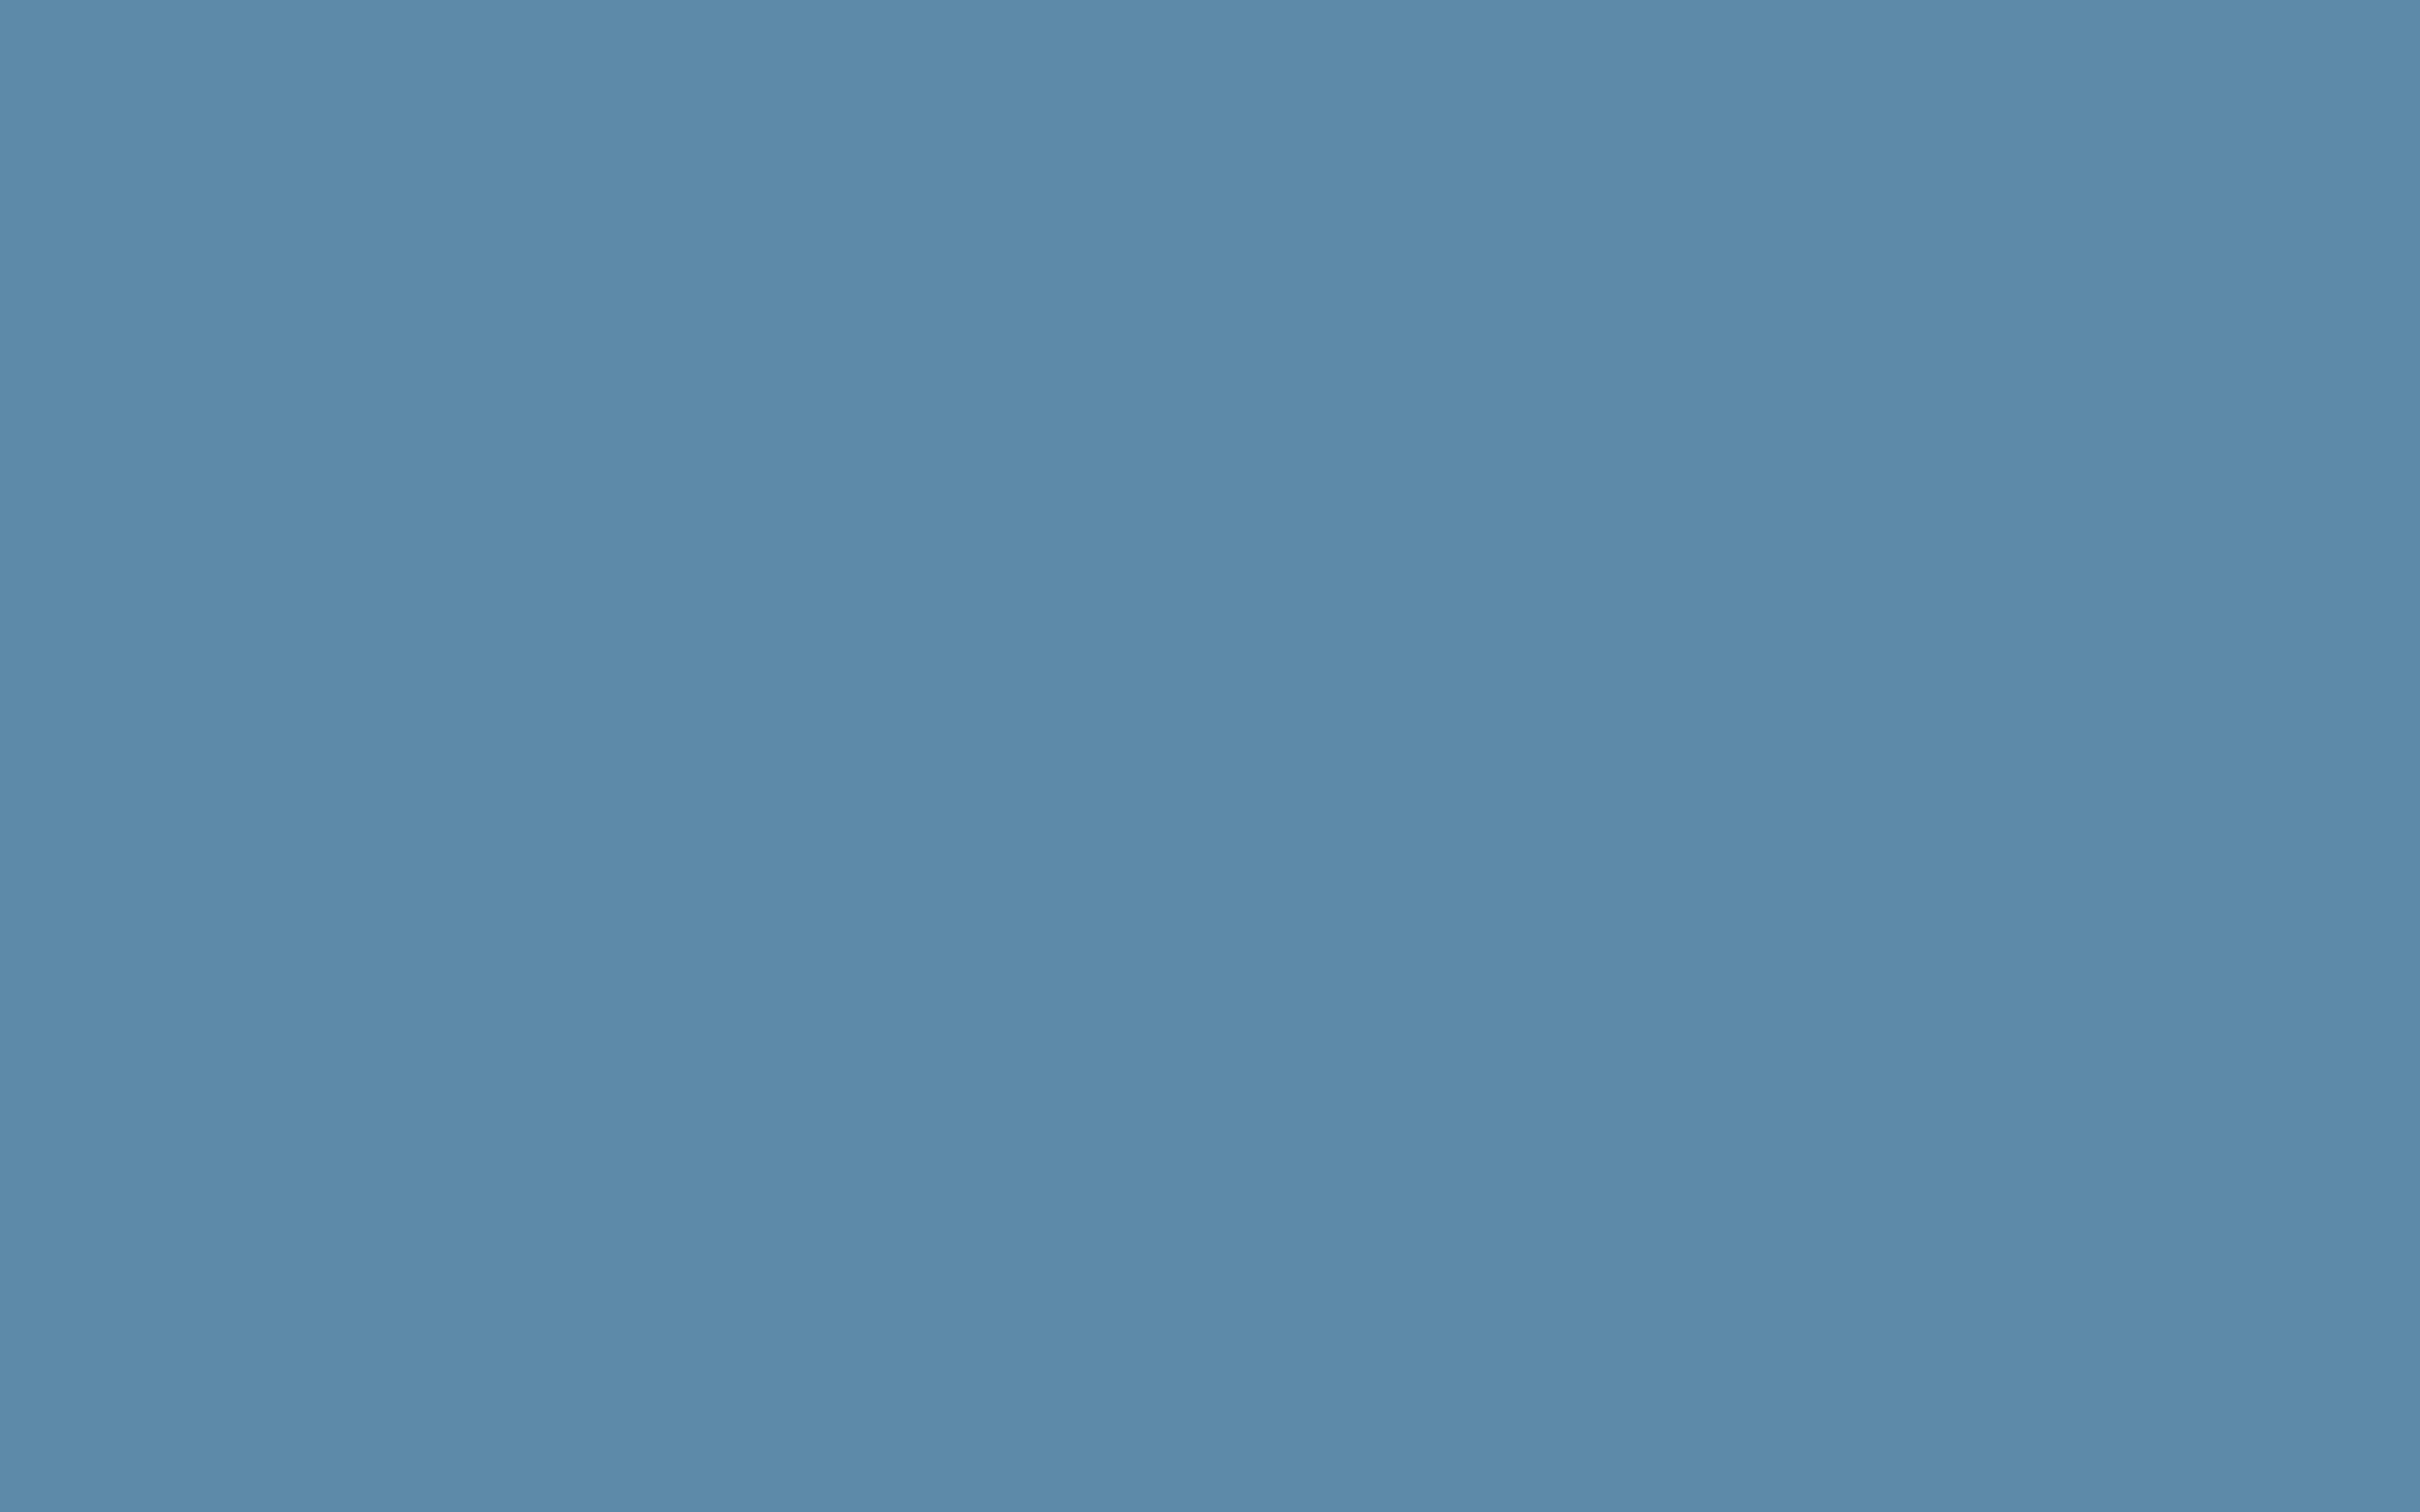 2560x1600 Air Force Blue Solid Color Background